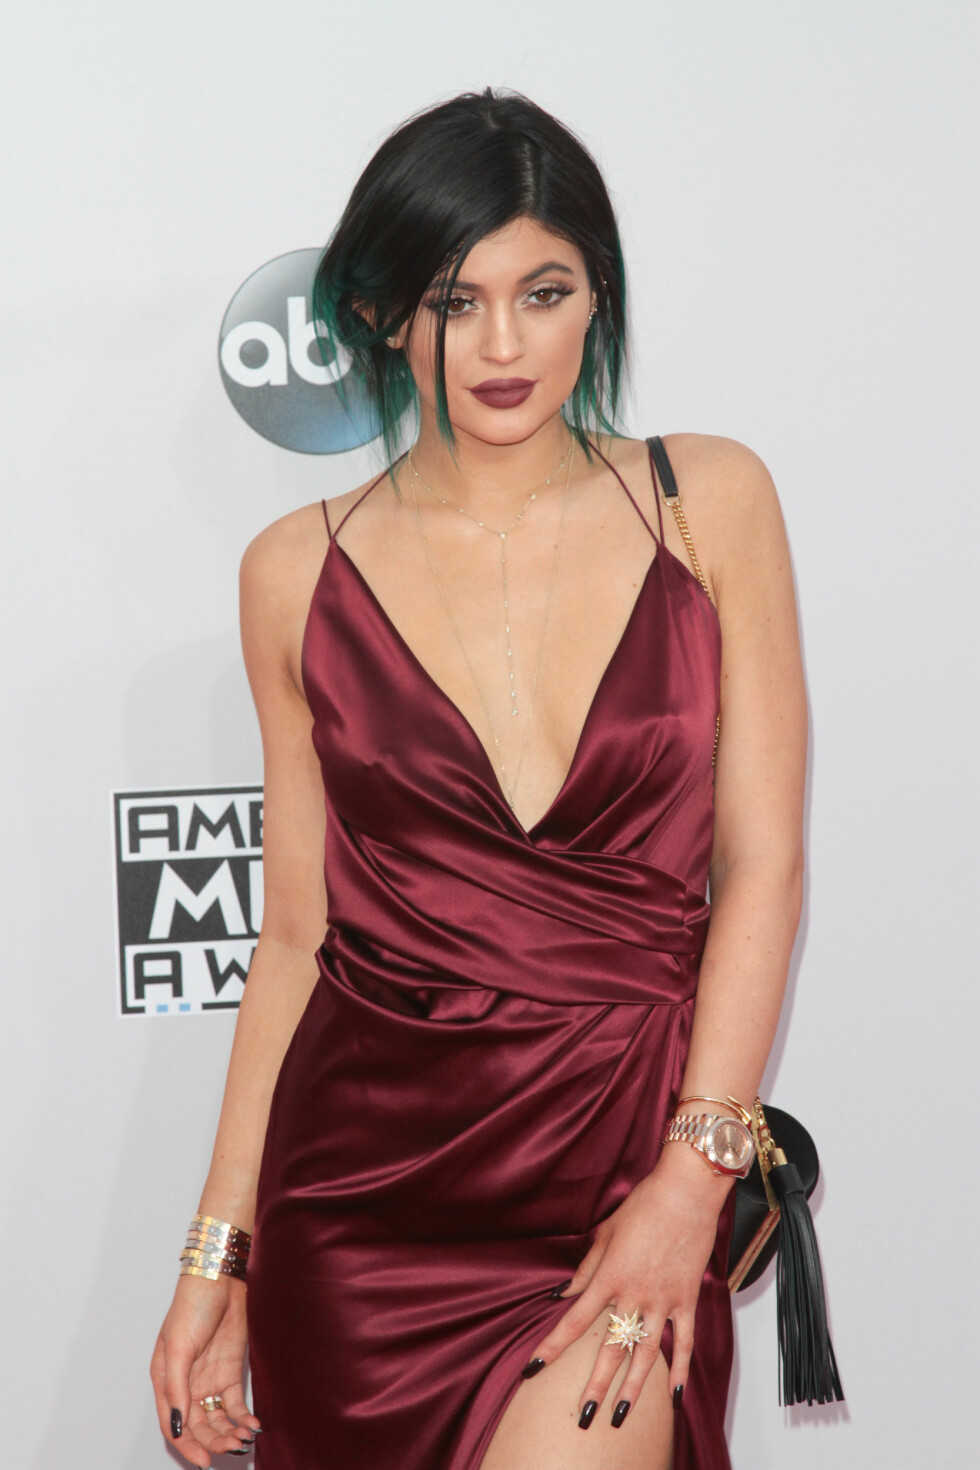 2014: Kylie Jenner Foto: SipaUSA